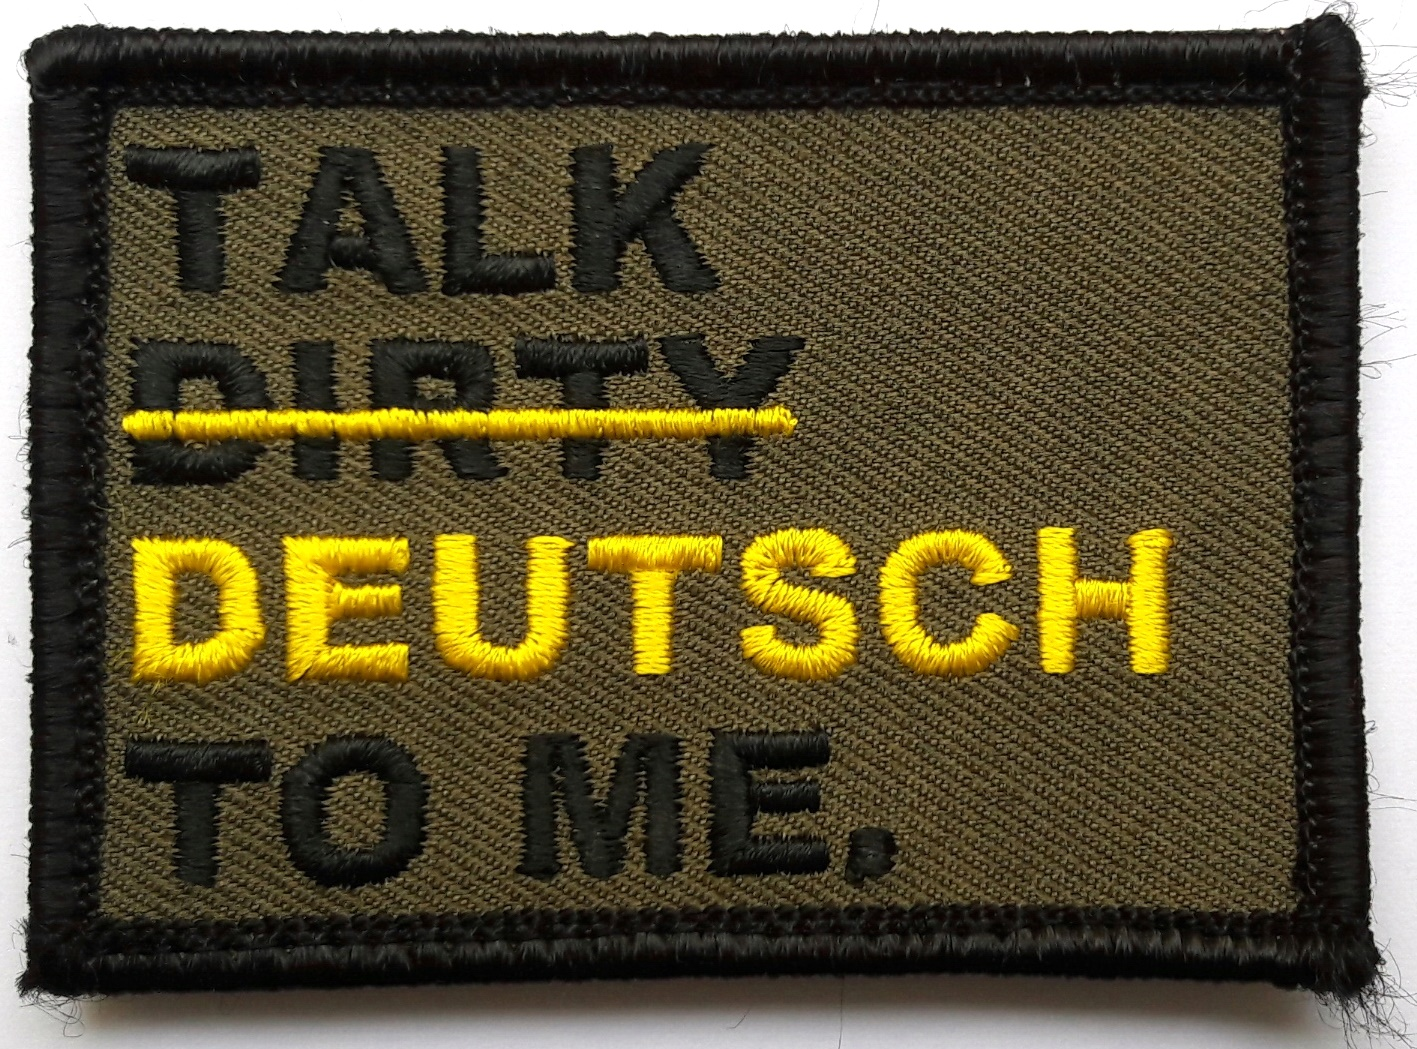 Moral Patch Talk dirty to me 7,0x5,0cm